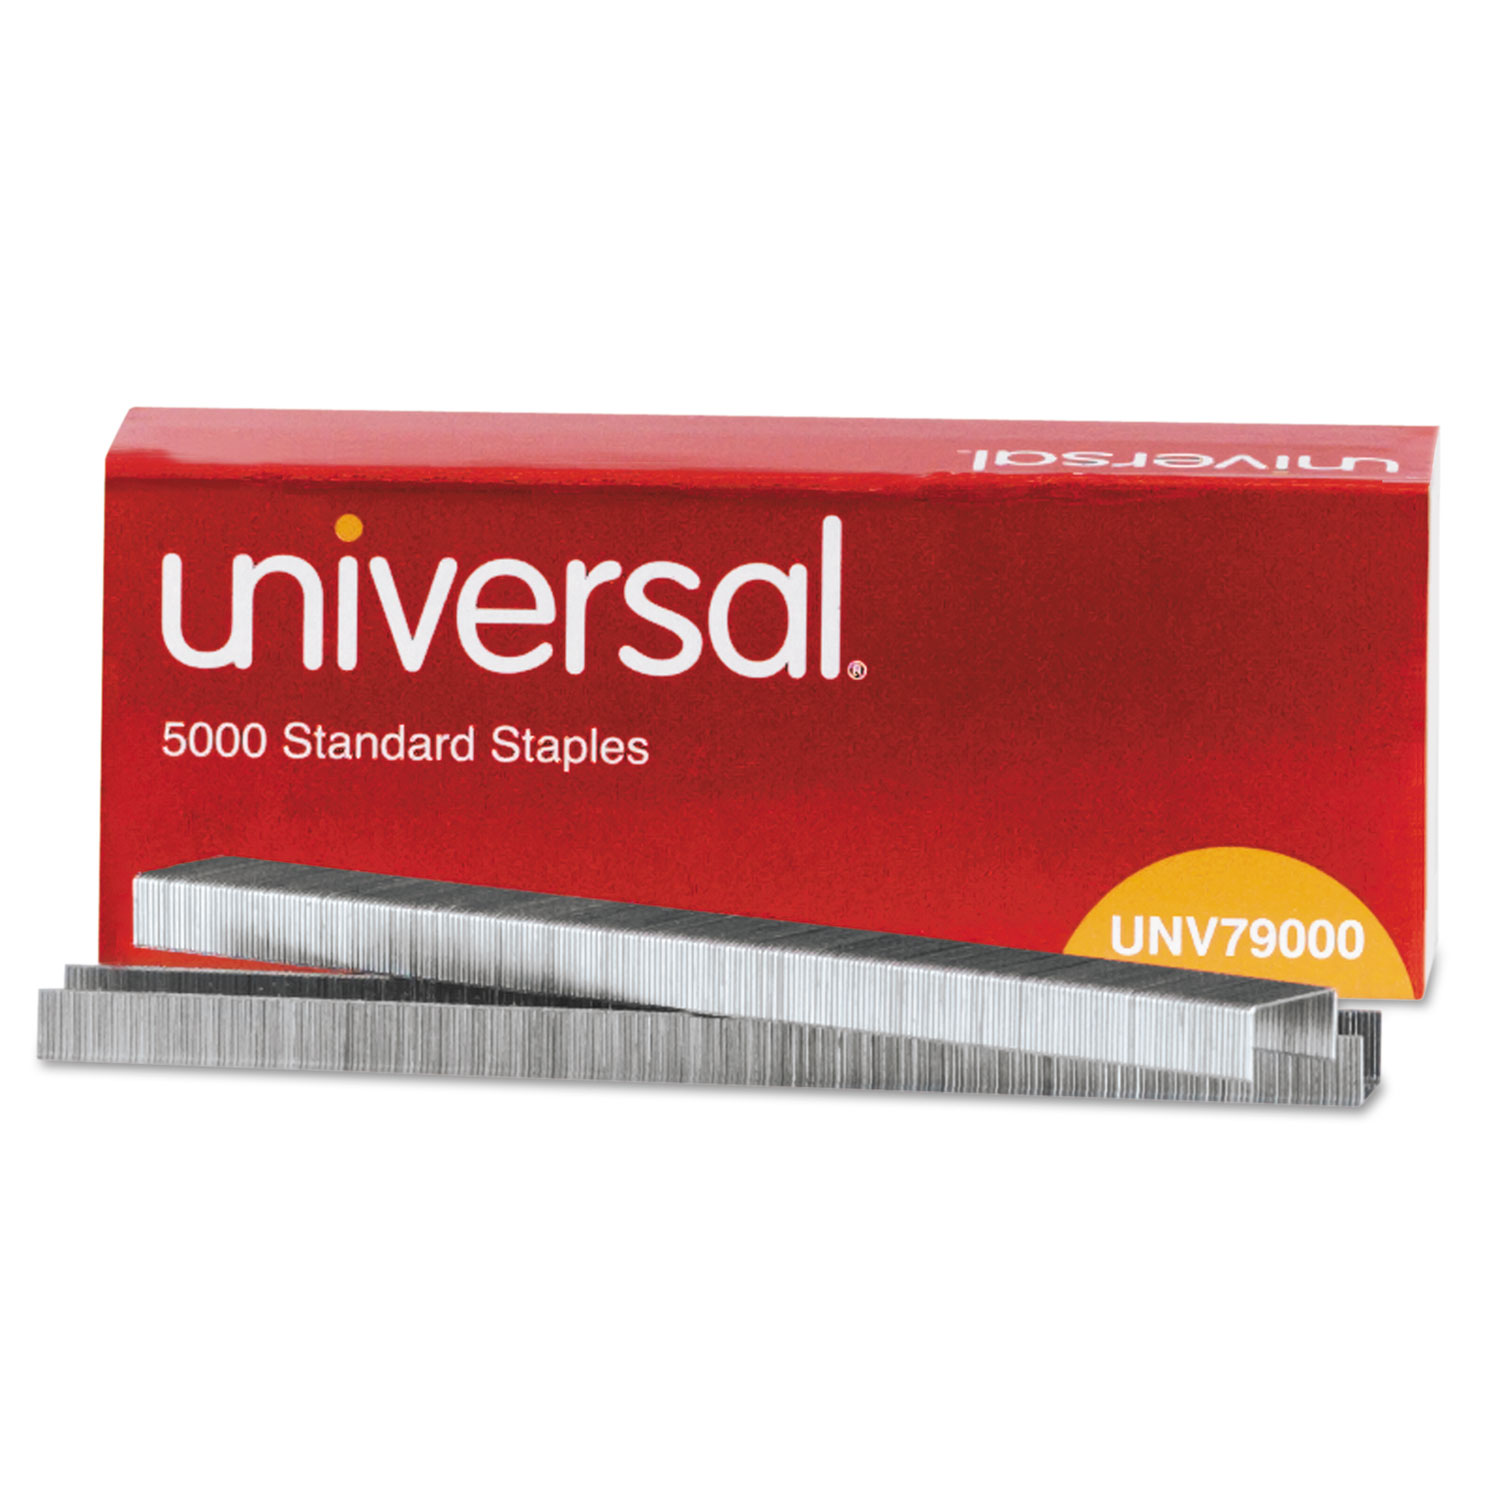 Standard Chisel Point 210 Strip Count Staples by Universal® UNV79000 ...